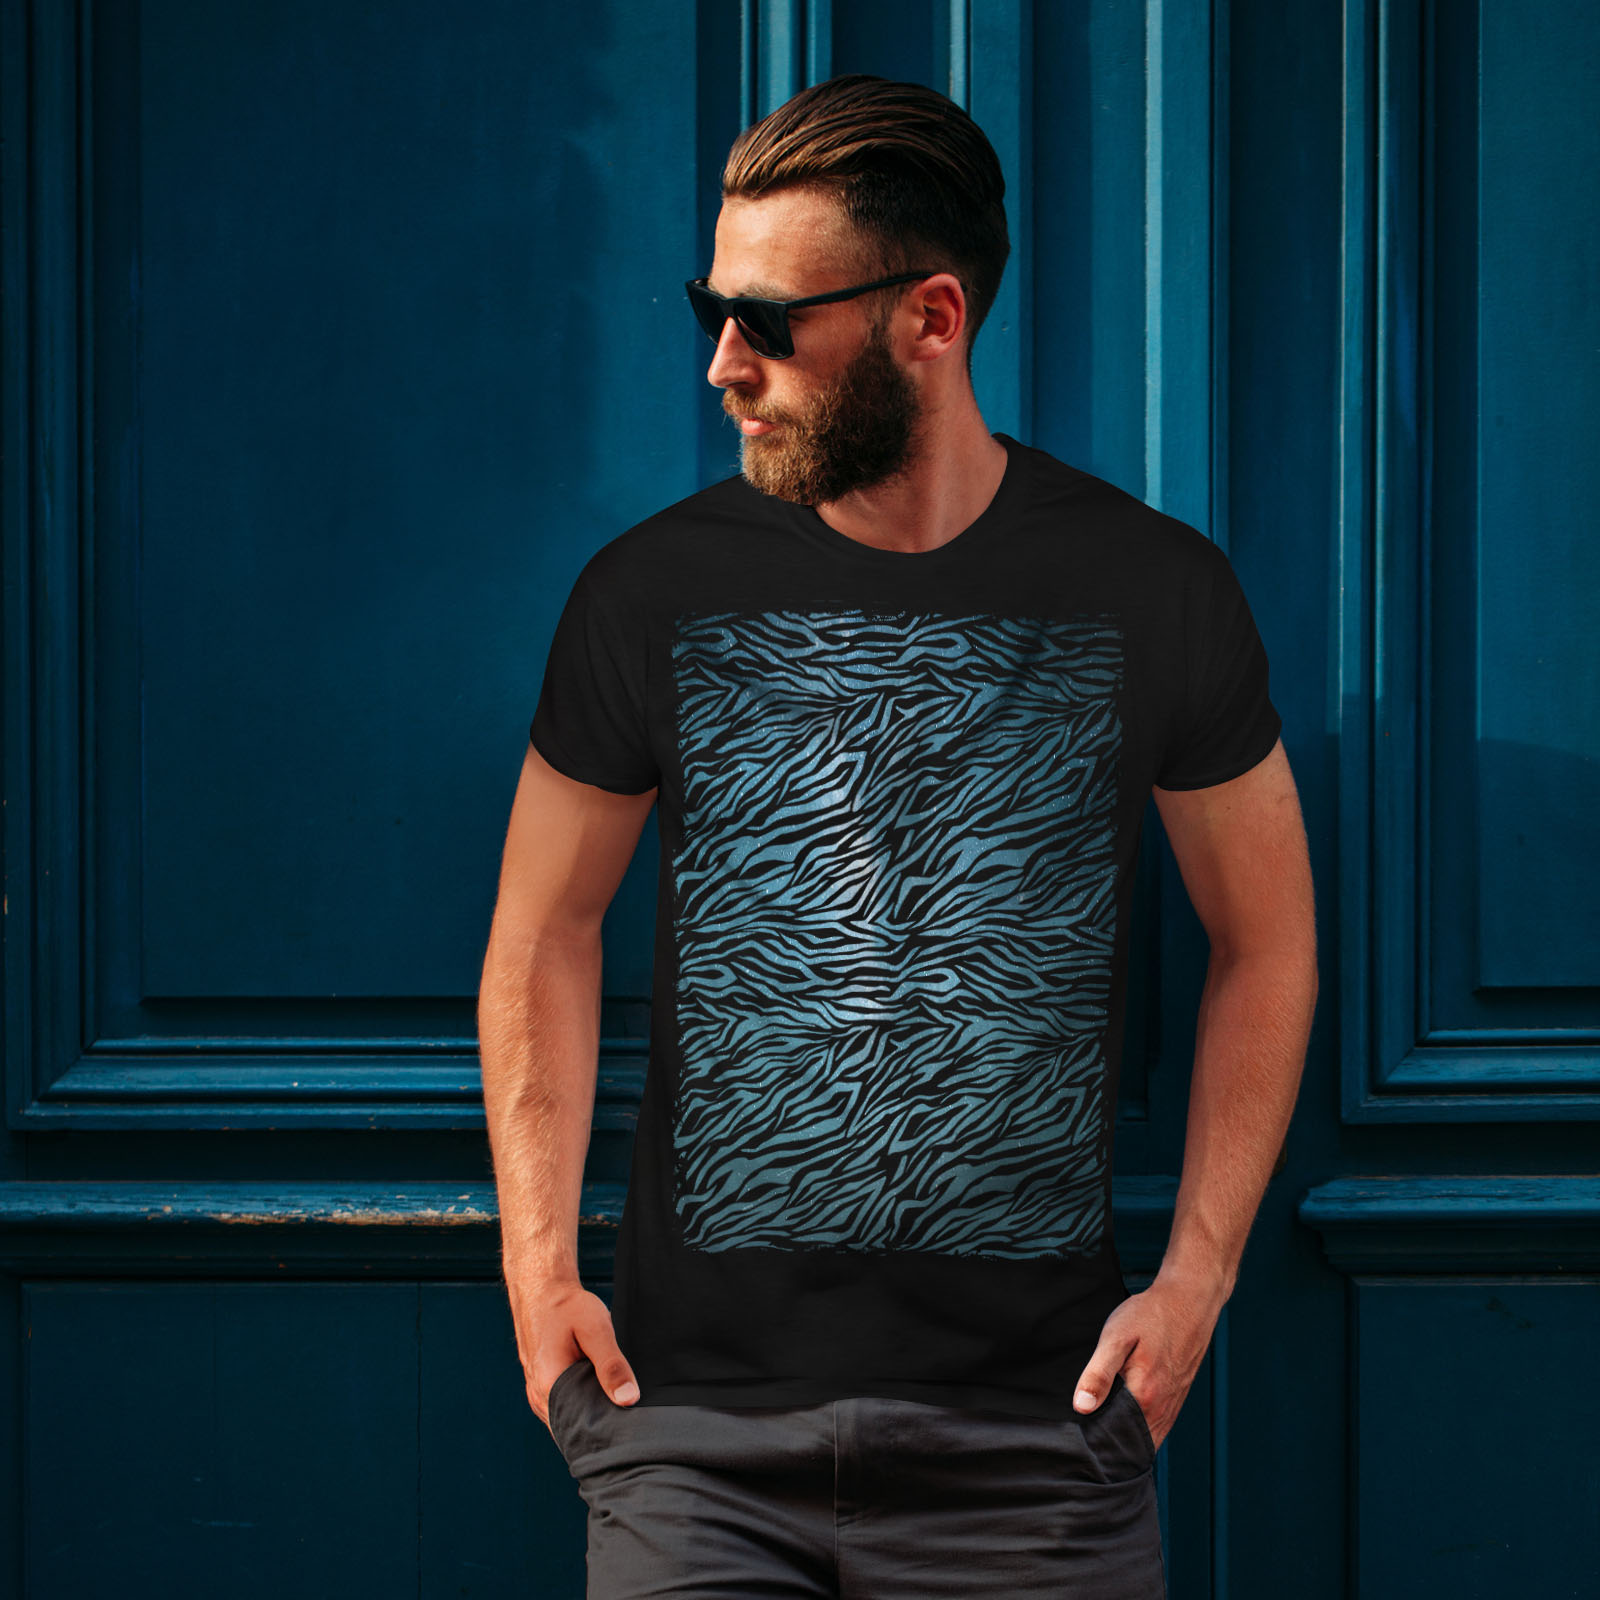 Wellcoda-Fashion-Pattern-Mens-T-shirt-Animal-Graphic-Design-Printed-Tee miniatuur 4